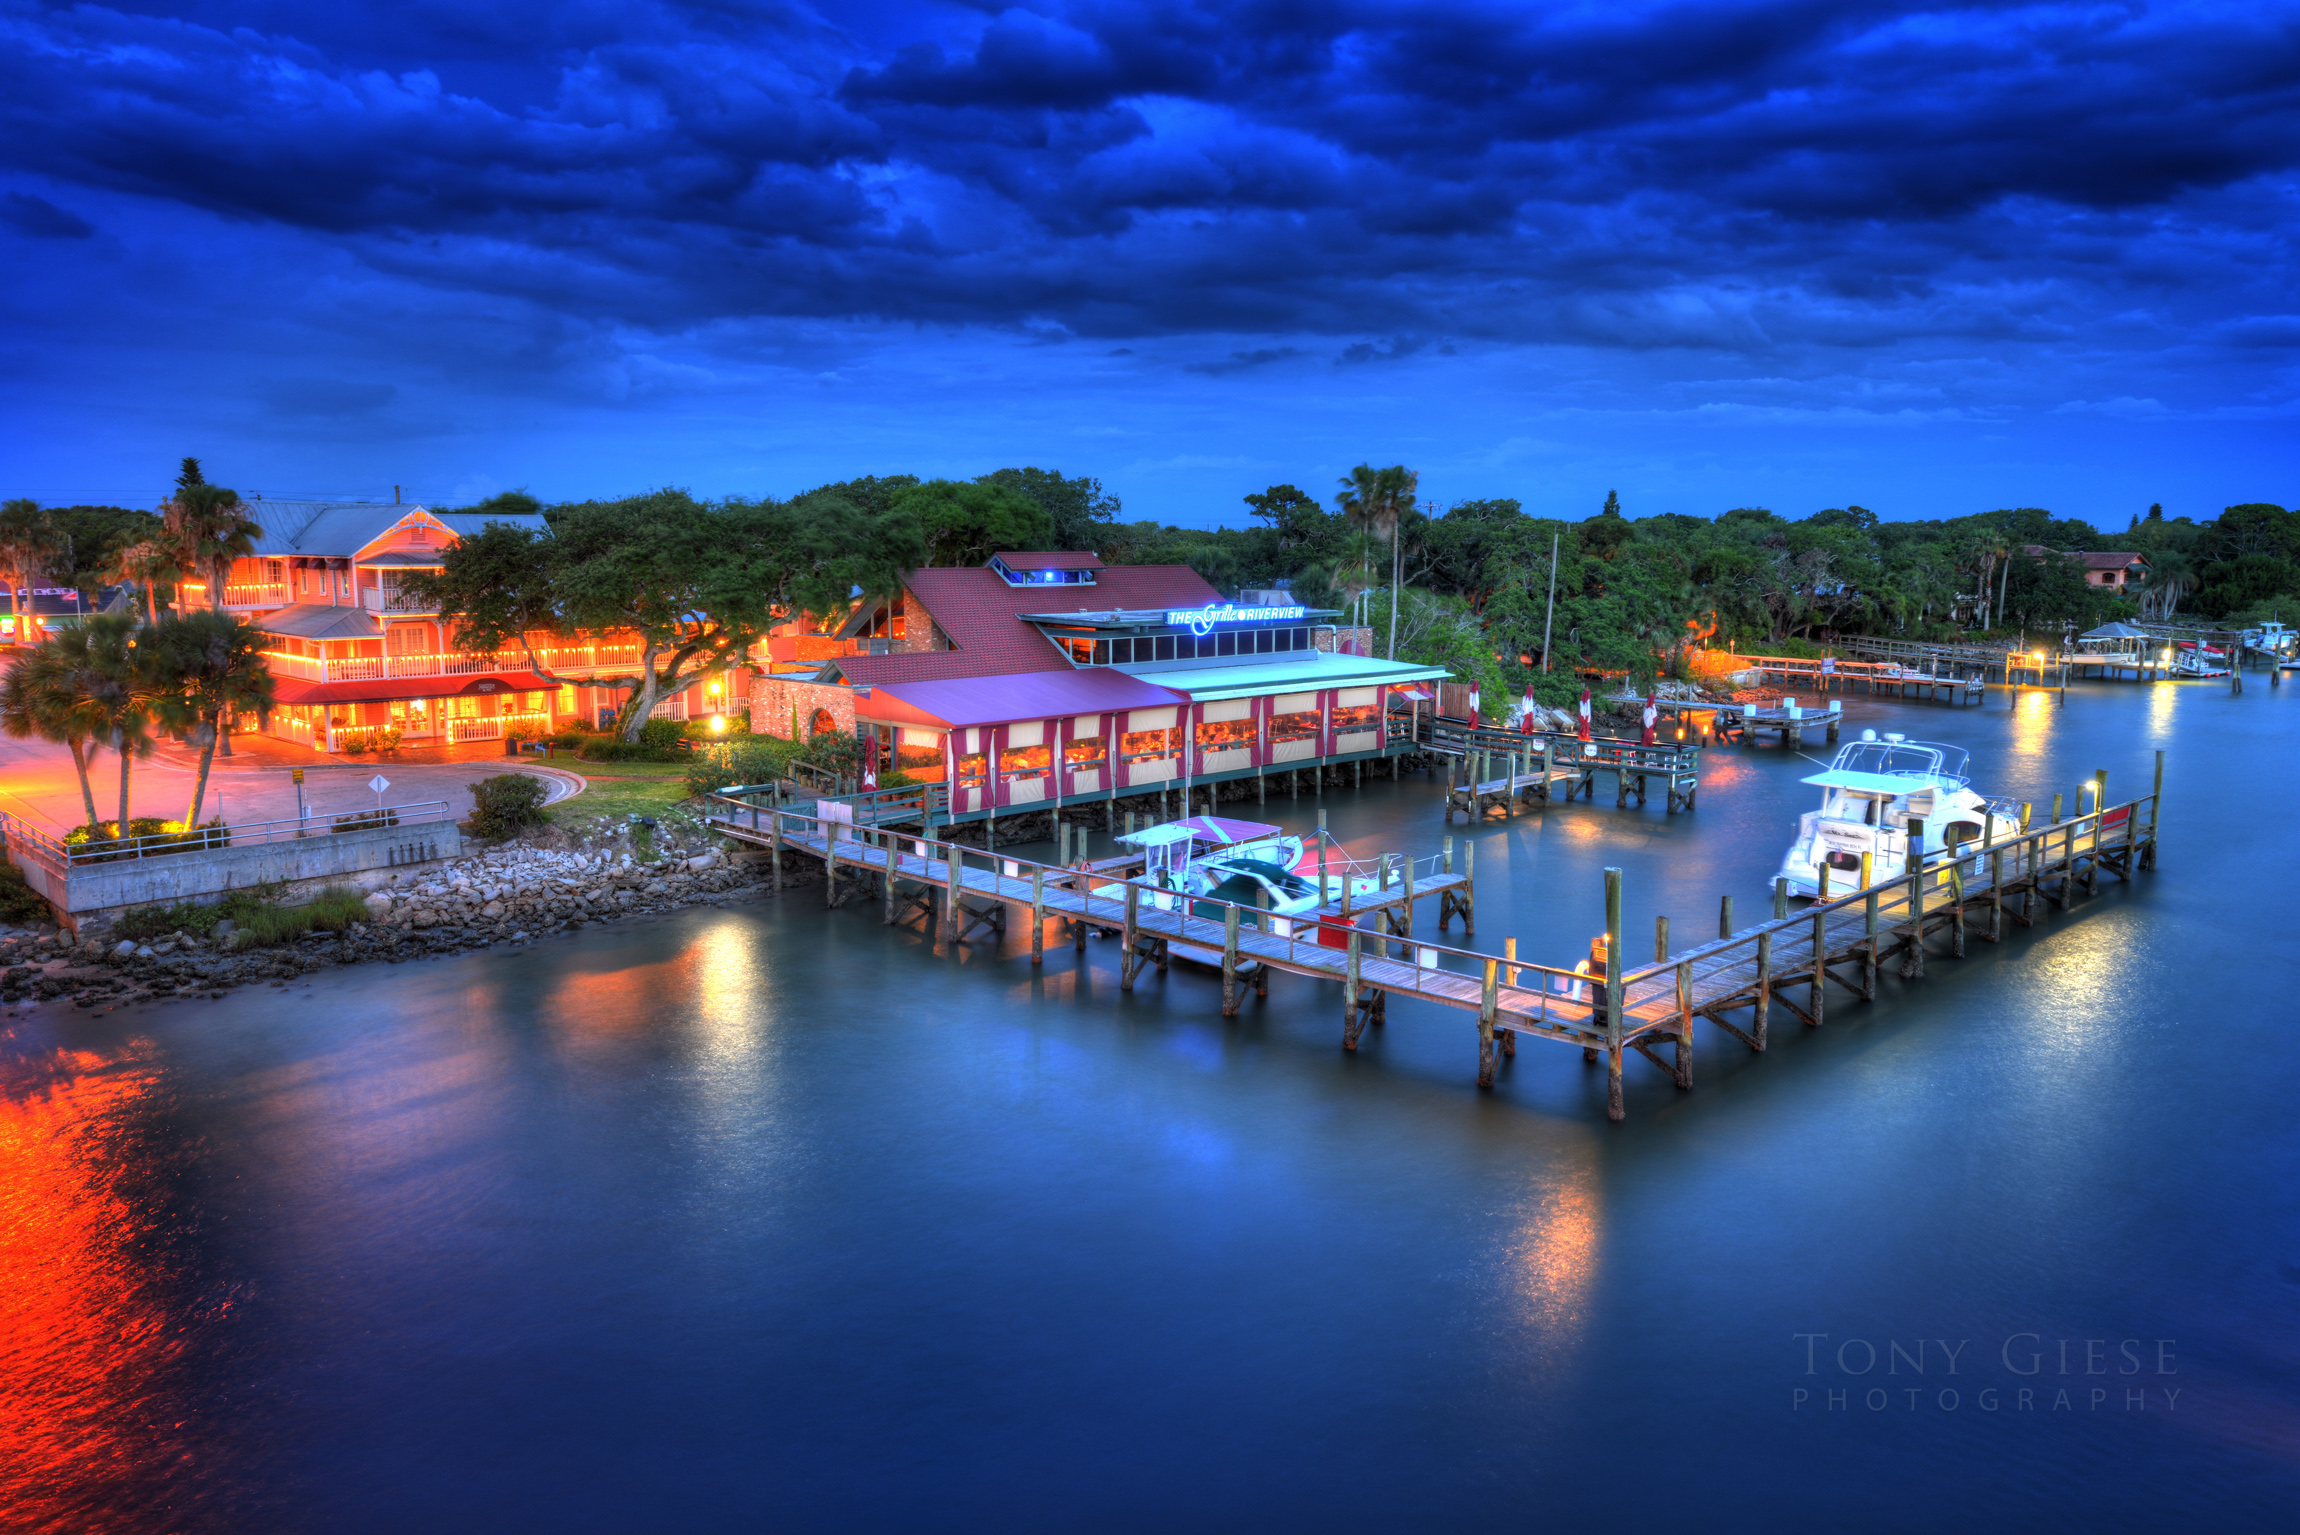 The Grille At Riverview New Smyrna Photography By Tony Giese